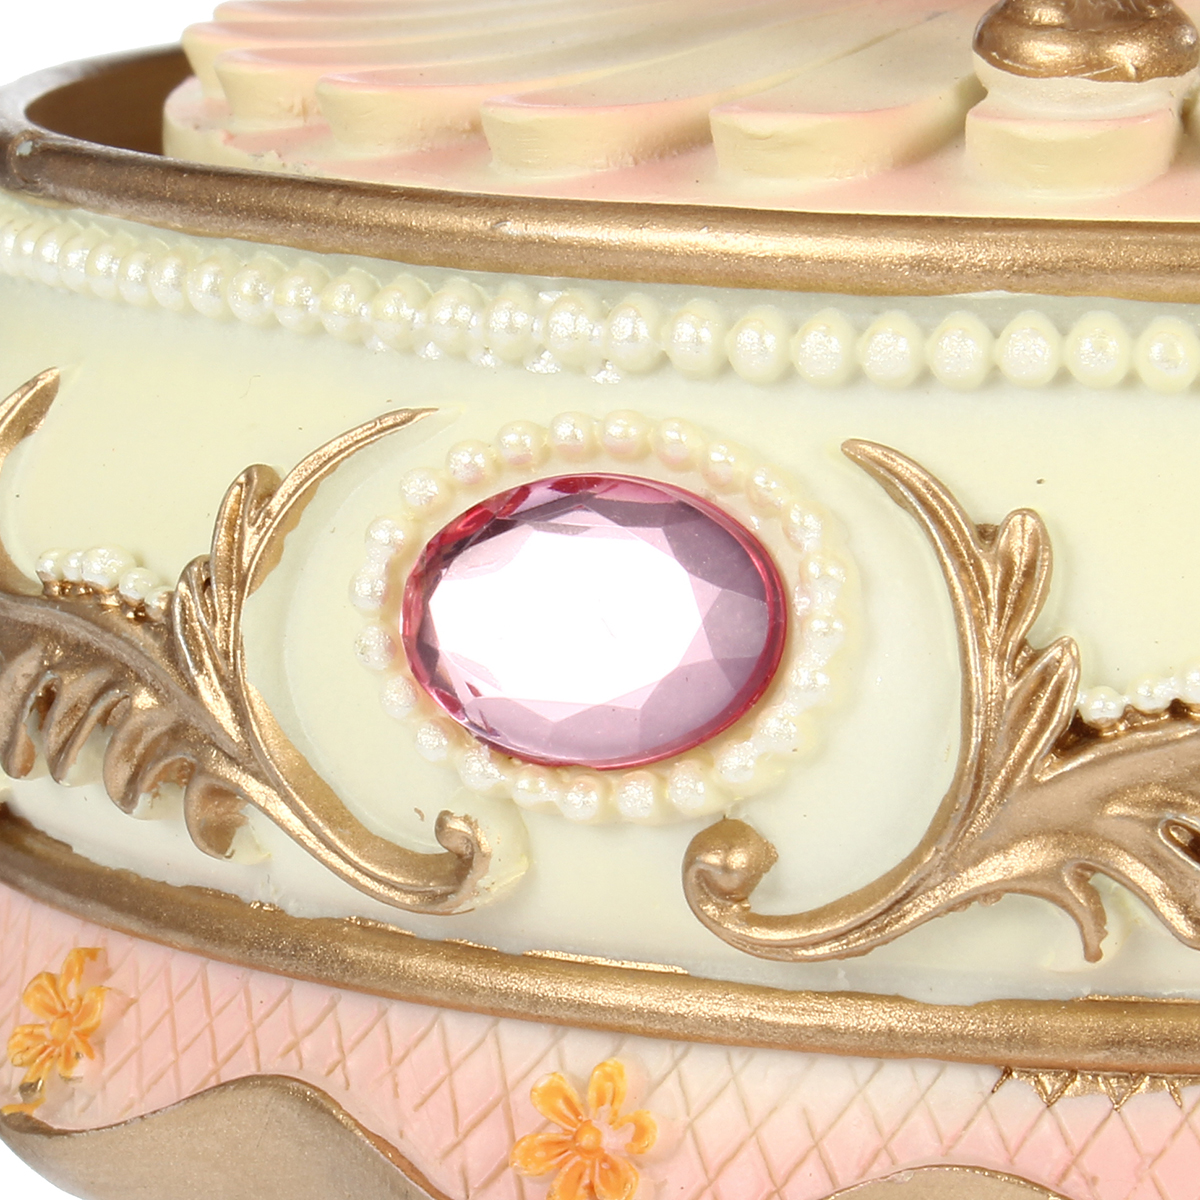 7 Colors LED Flash Light Horse Classic Merry-Go-Round Carousel Music Box Birthday Gift